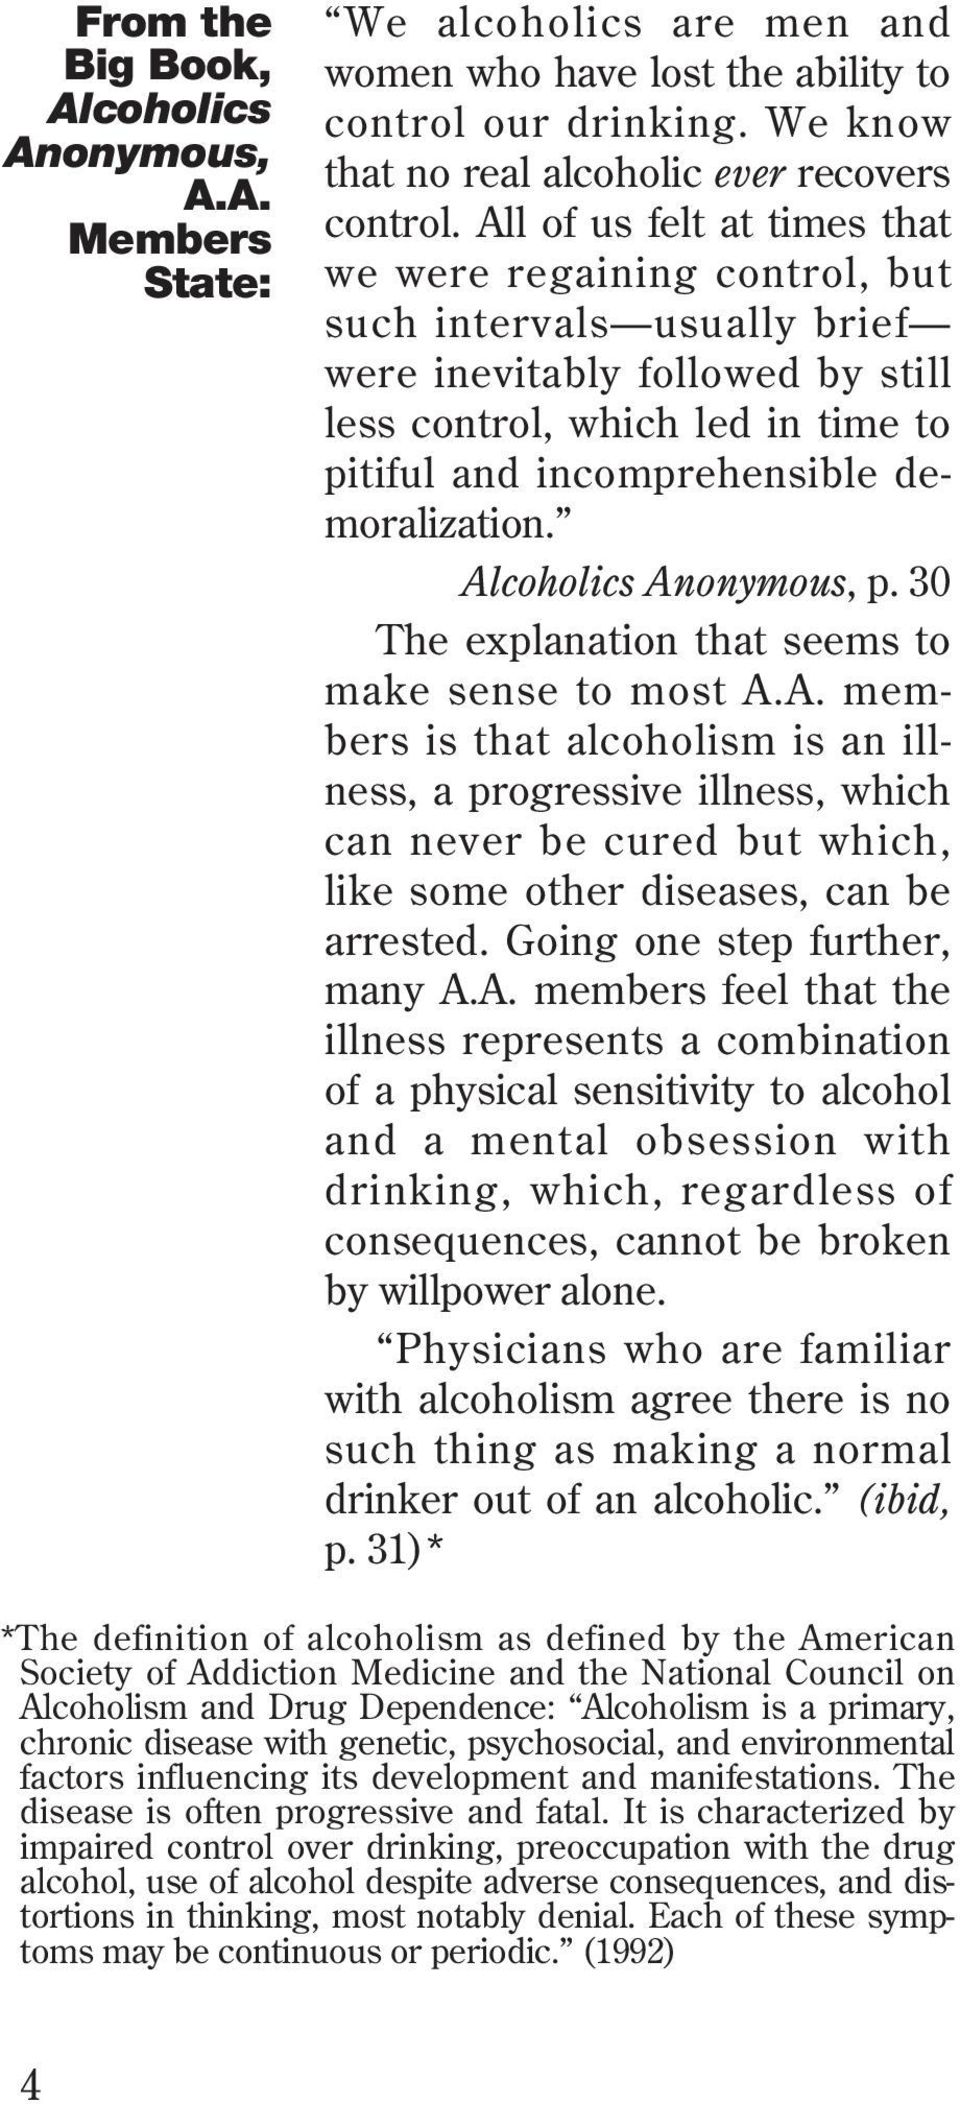 demoralization. Alcoholics Anonymous, p. 30 The explanation that seems to make sense to most A.A. members is that alcoholism is an illness, a progressive illness, which can never be cured but which, like some other diseases, can be arrested.